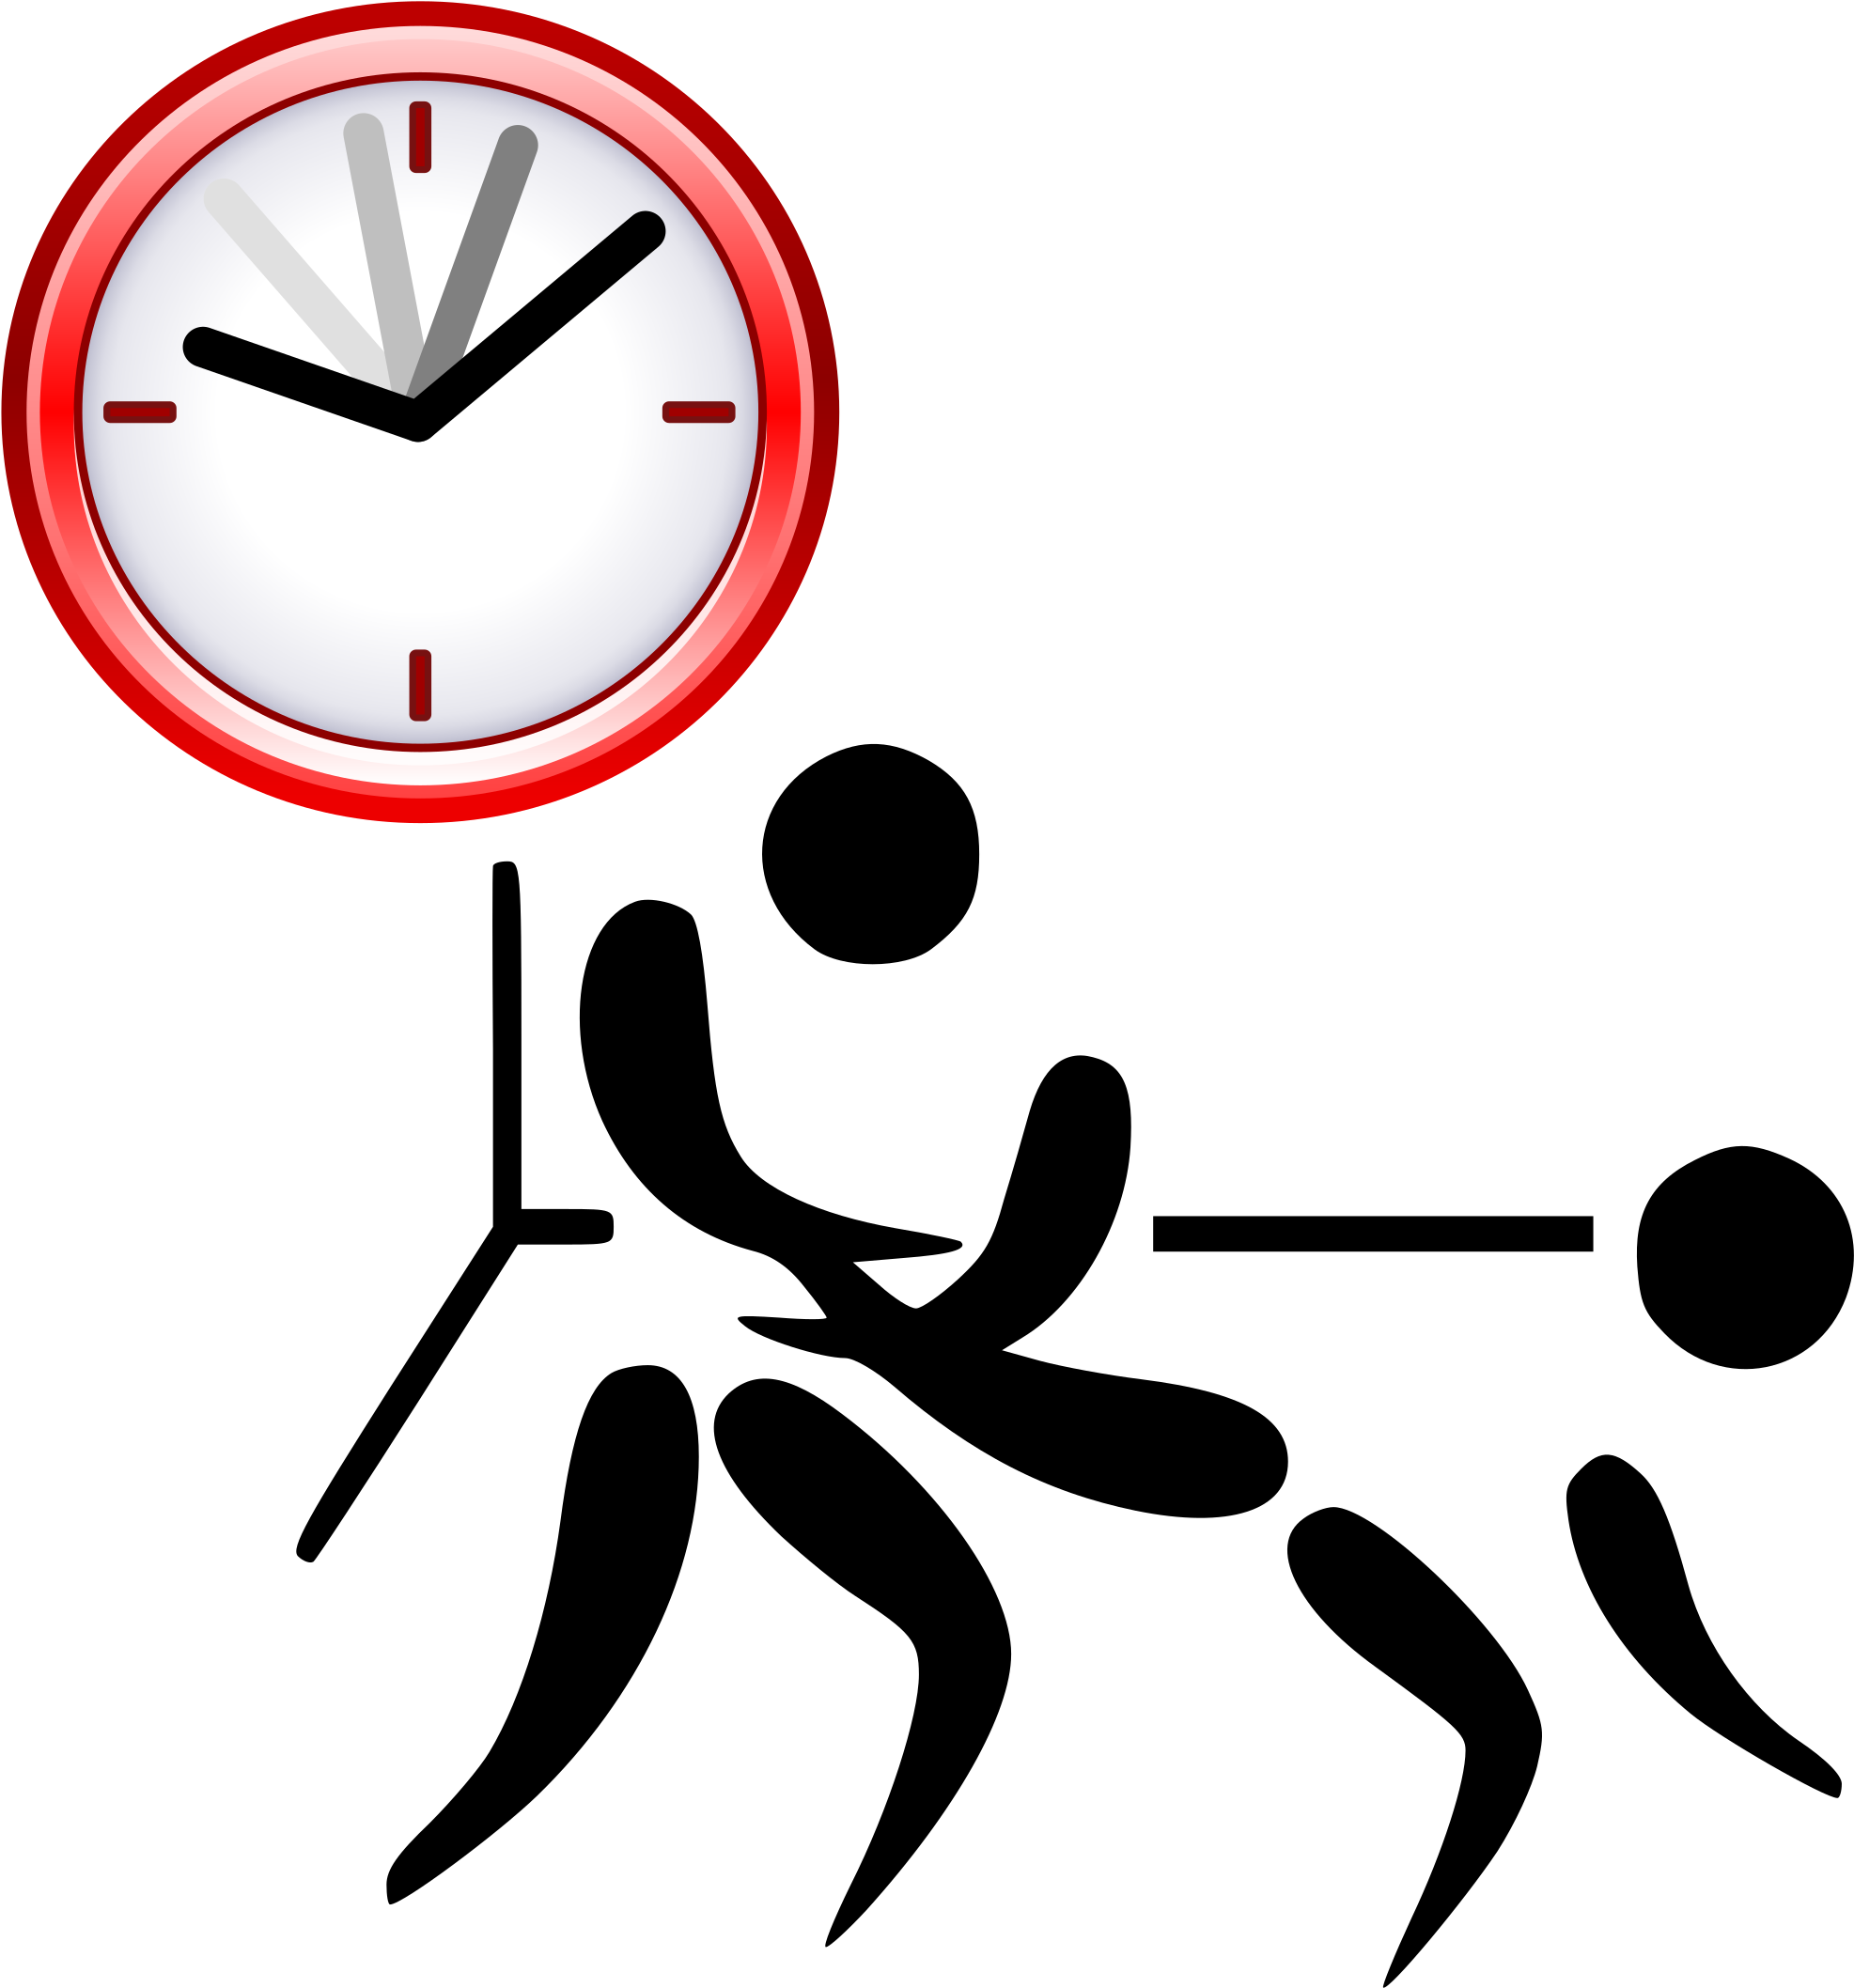 Image Black And White Download Clock Svg Pictogram.